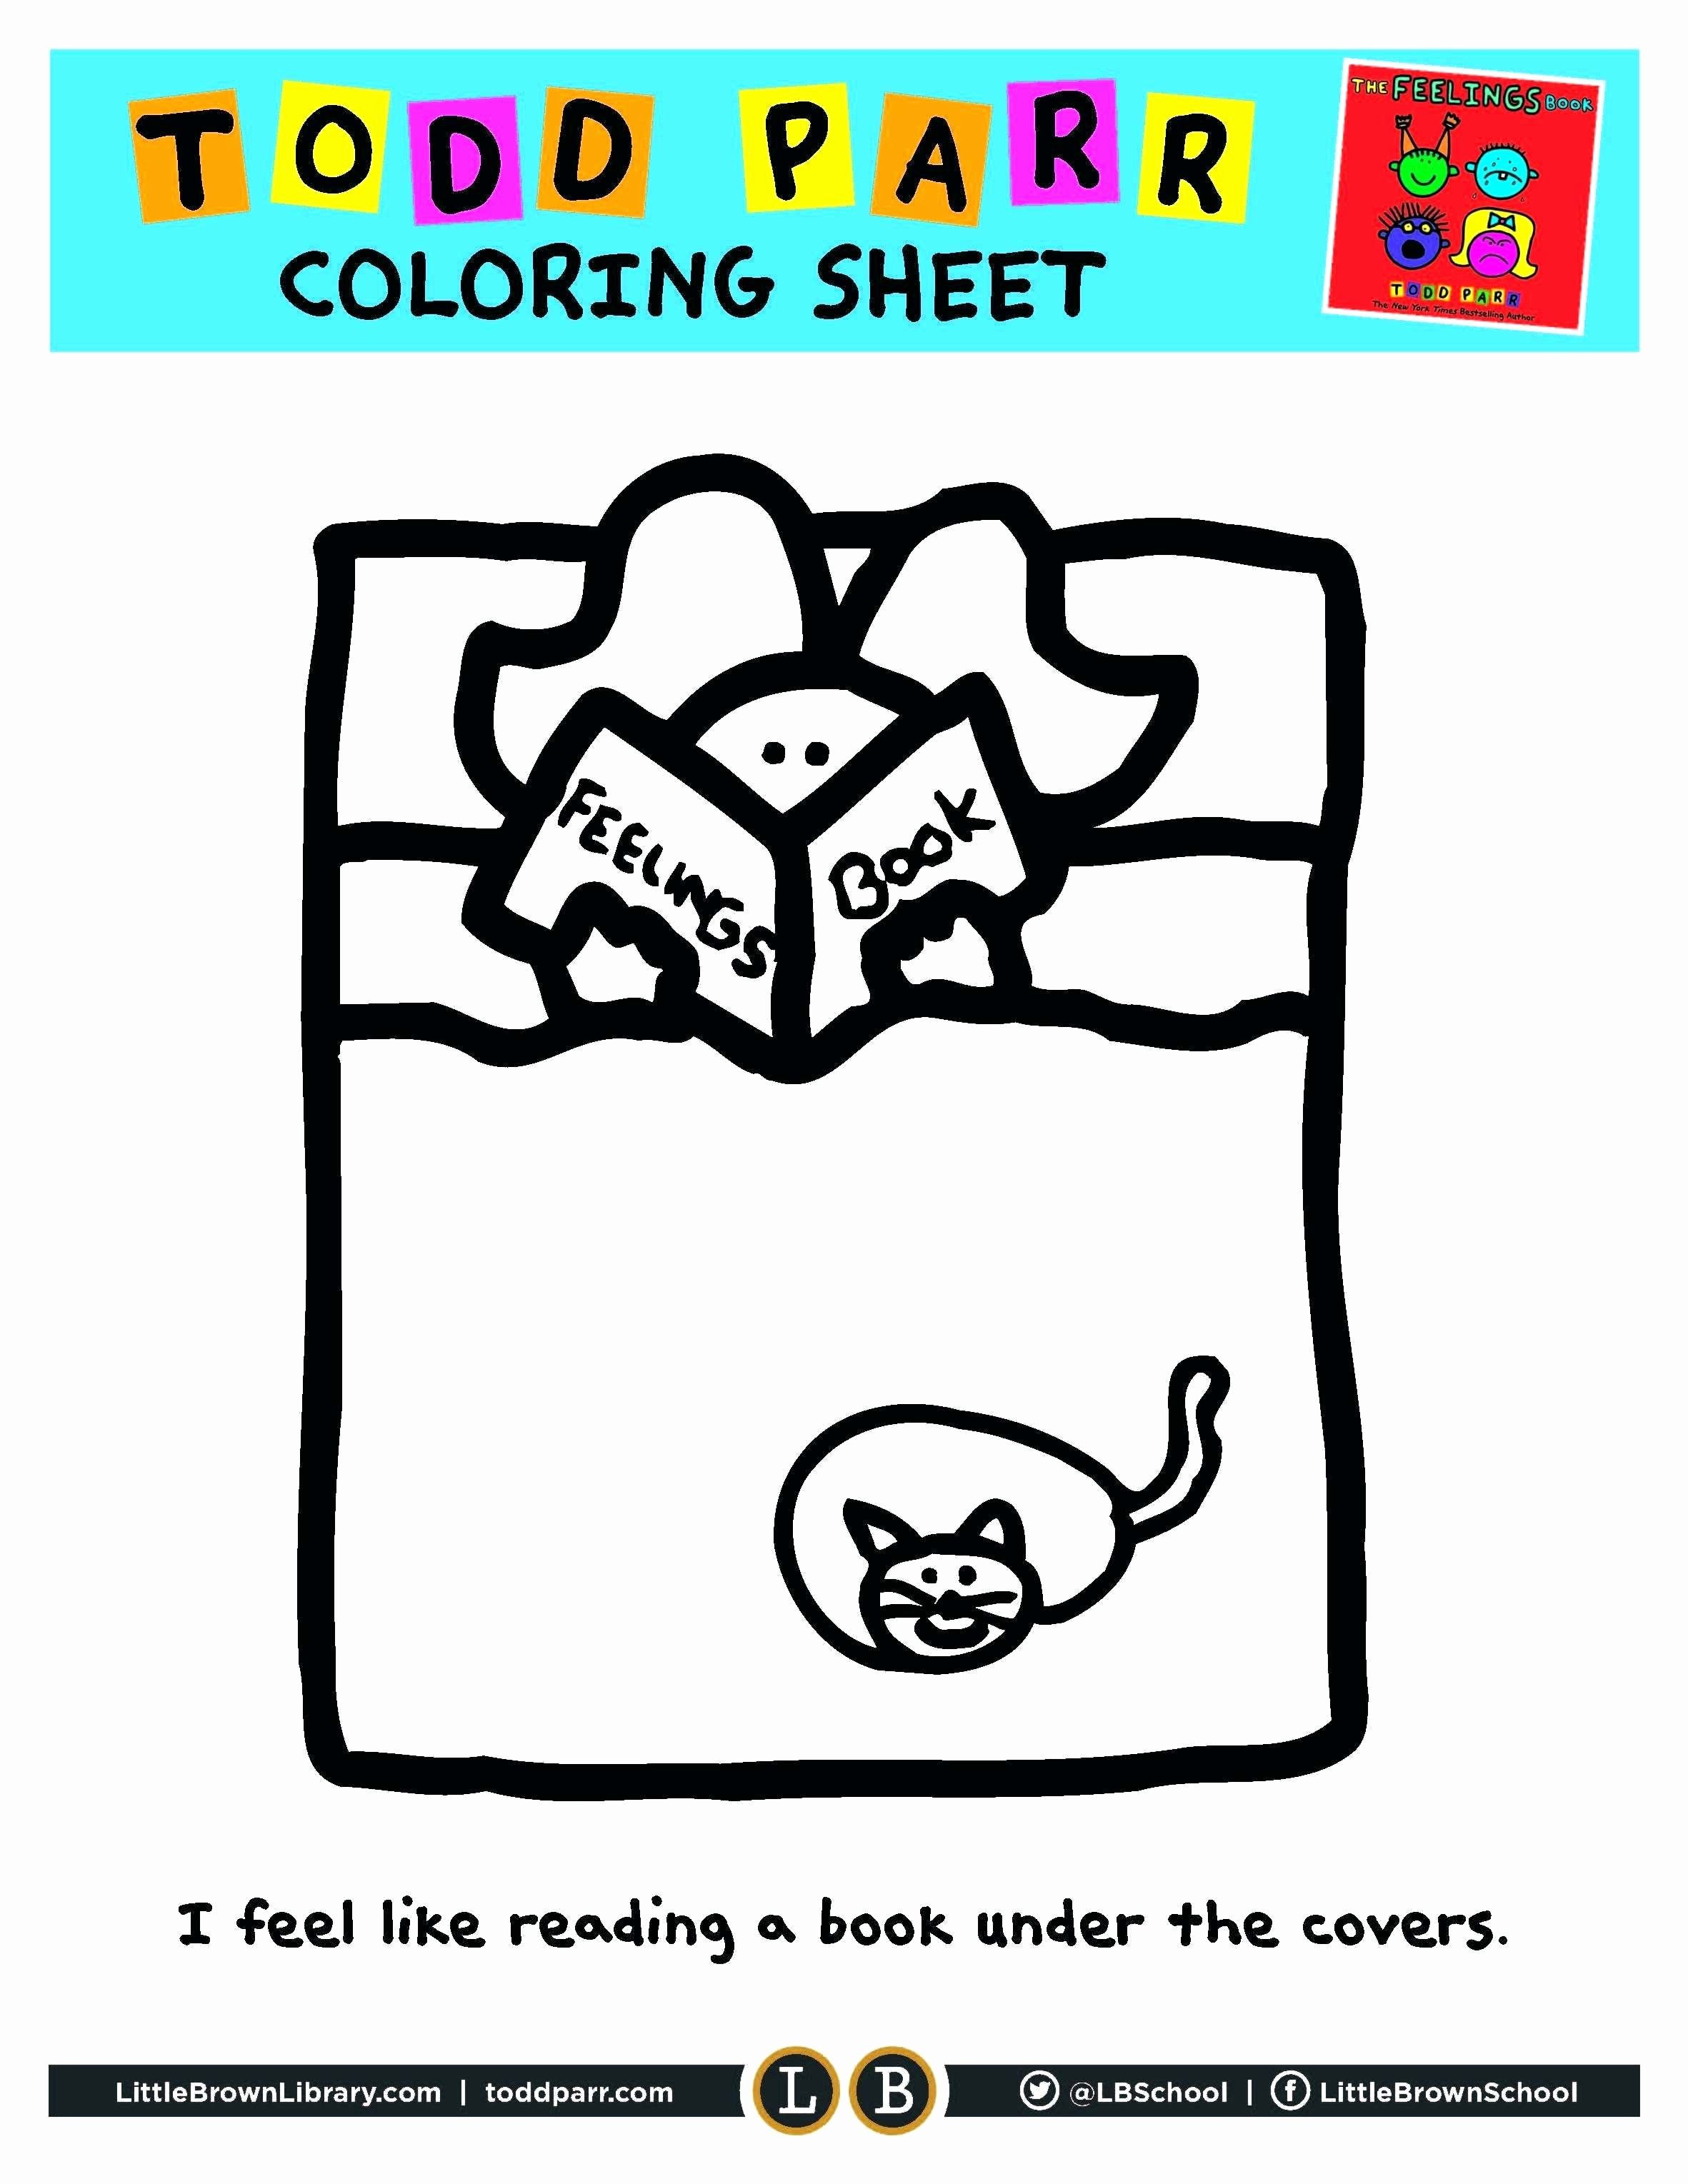 Macaroni And Cheese Coloring Pages Beautiful Mac And Cheese Coloring Page Quorumsheet